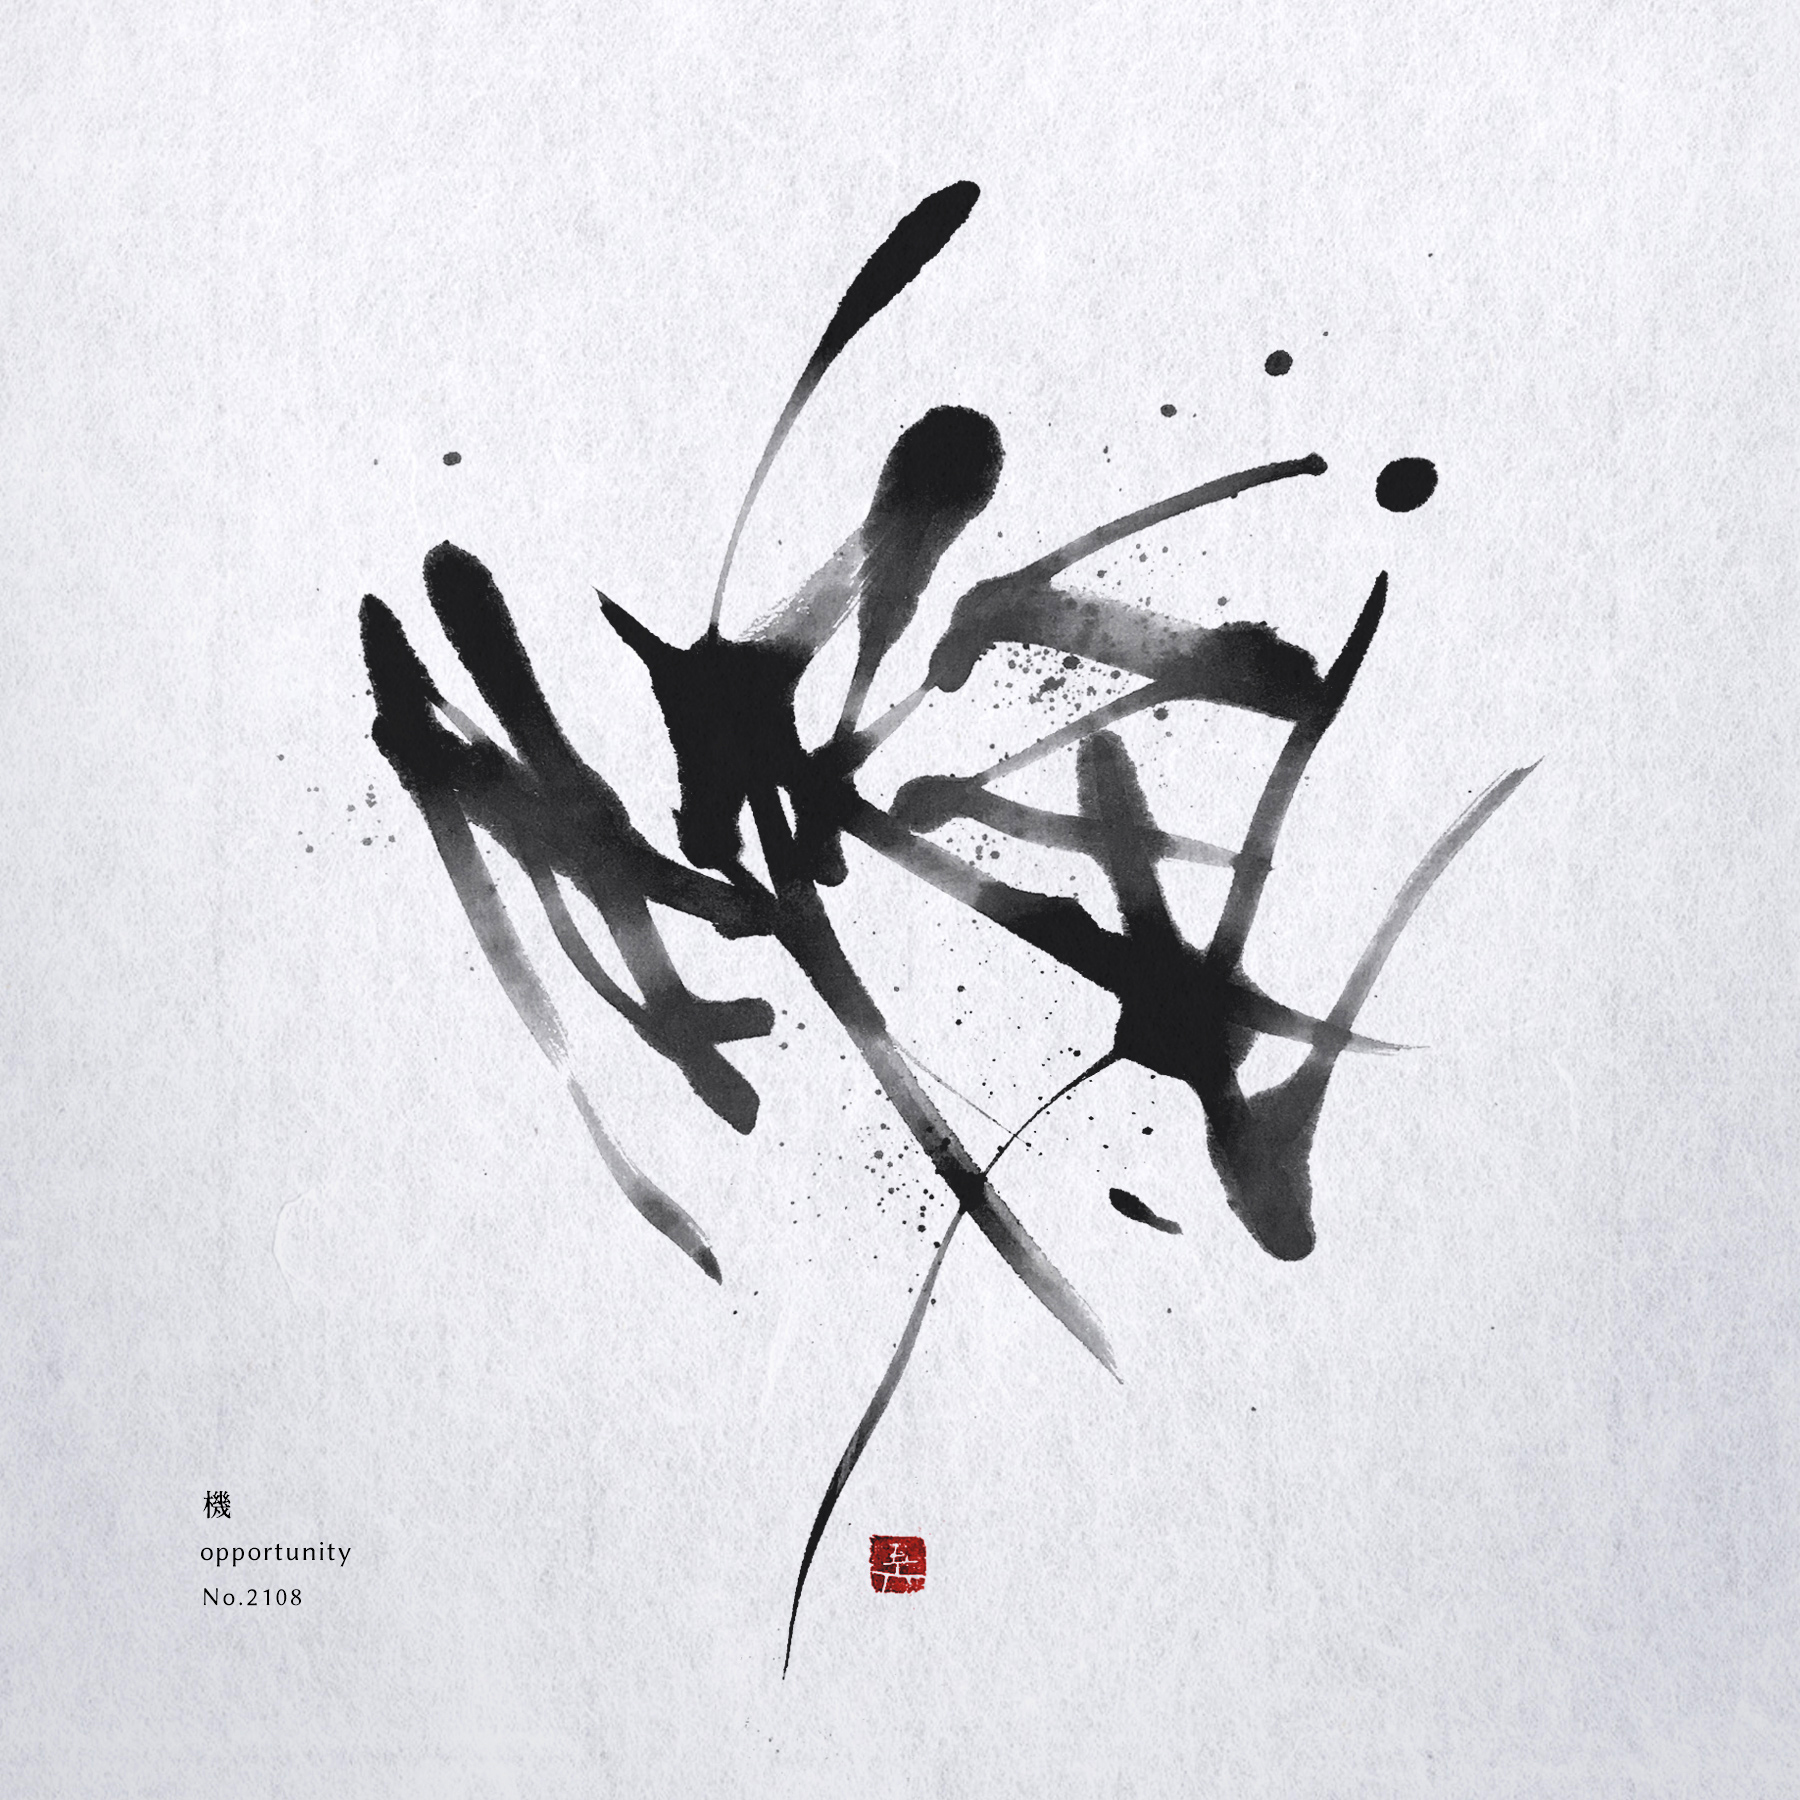 機 | opportunity 書道作品 japaneseart japanese calligraphy 書家 田川悟郎 Goroh Tagawa